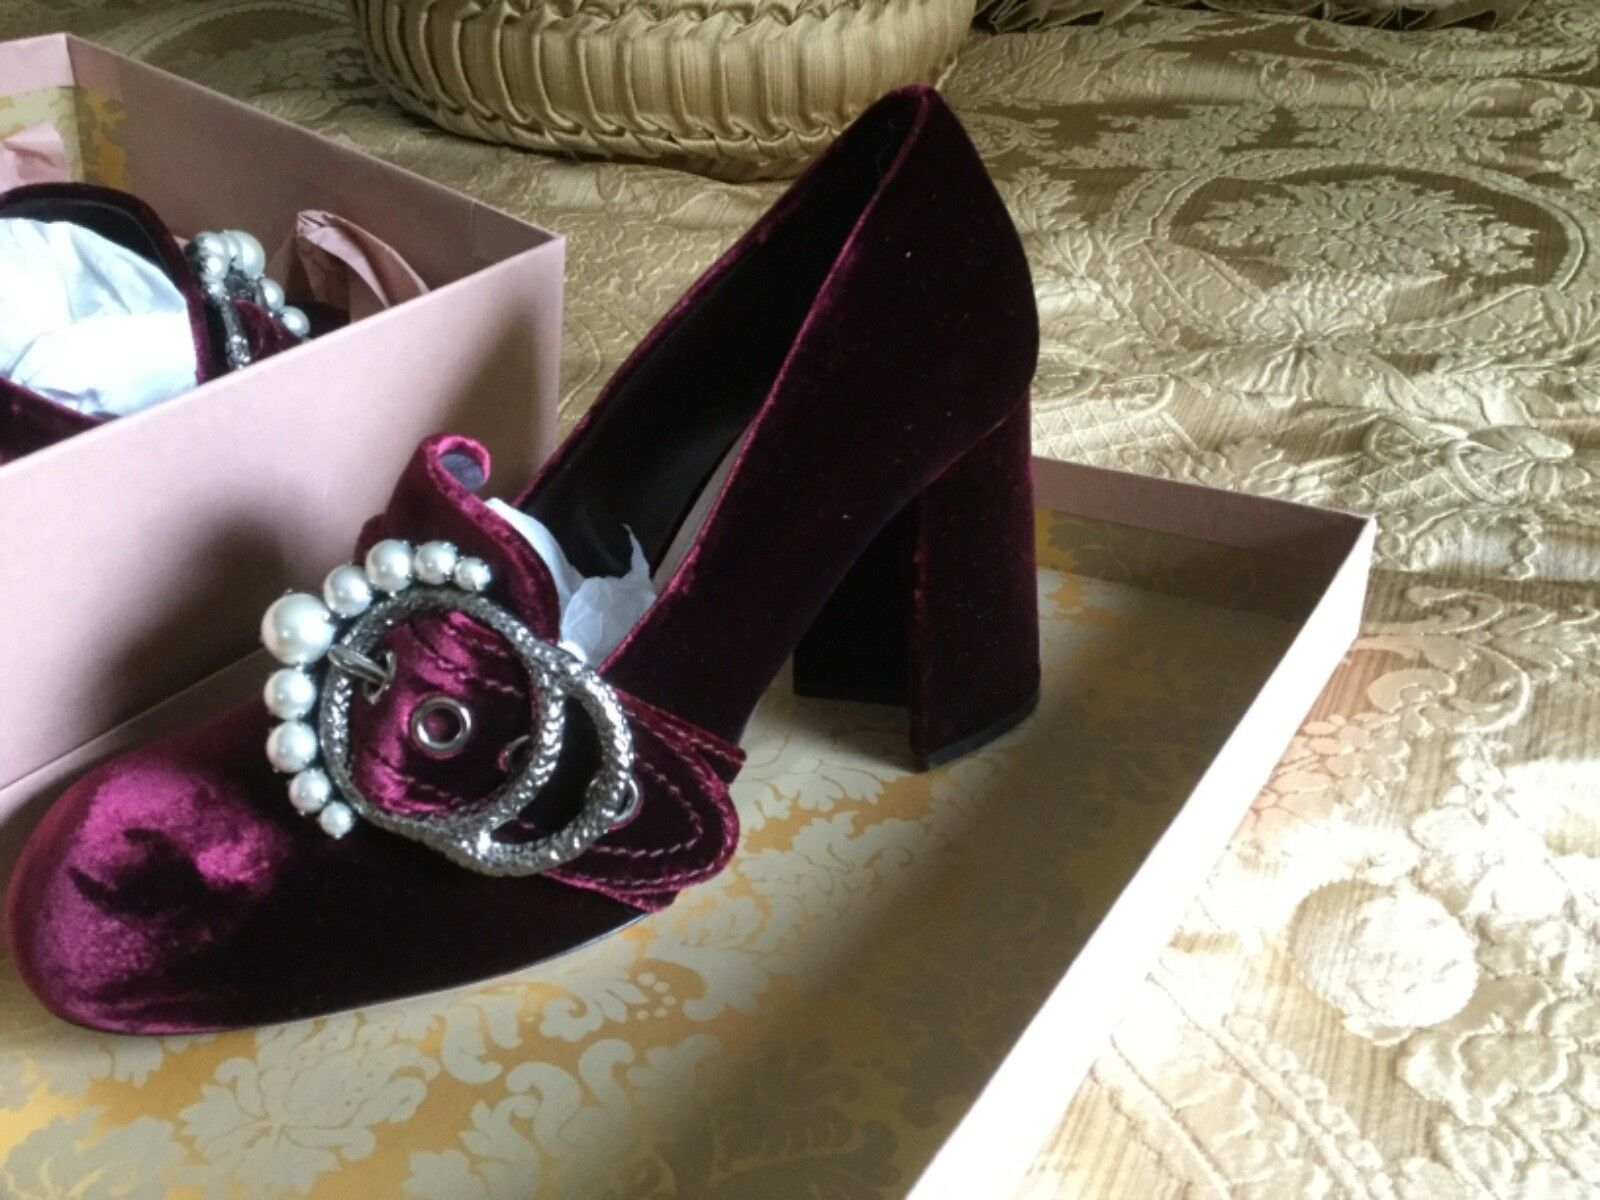 miu miu shoes 39 new in authentic box pearls sold out authentic in fd2ce1